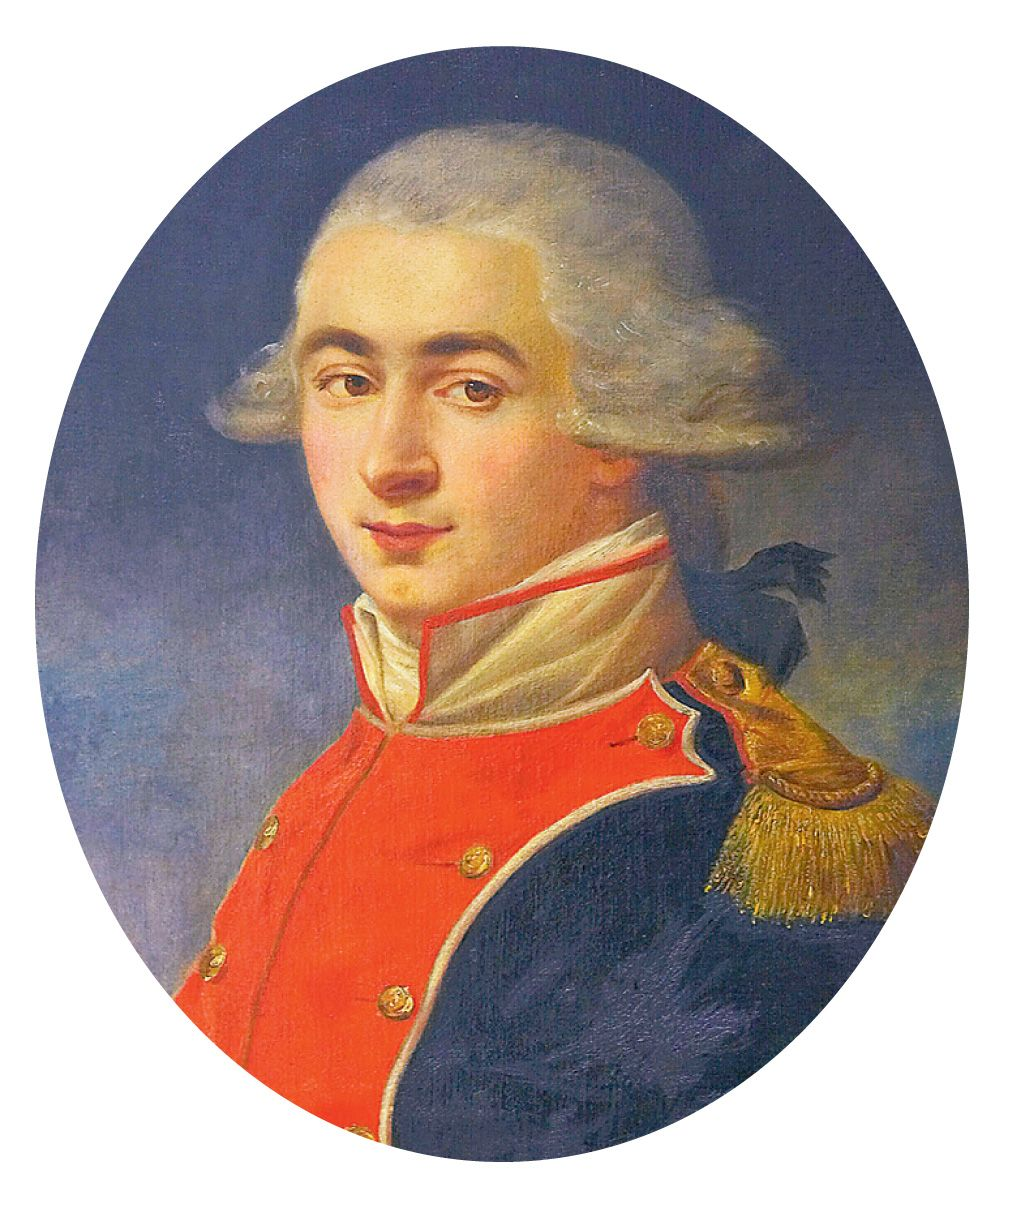 """Marquis de Lafayette, September 6, 1757. """"If the liberties ... Lafayette For Freedom"""